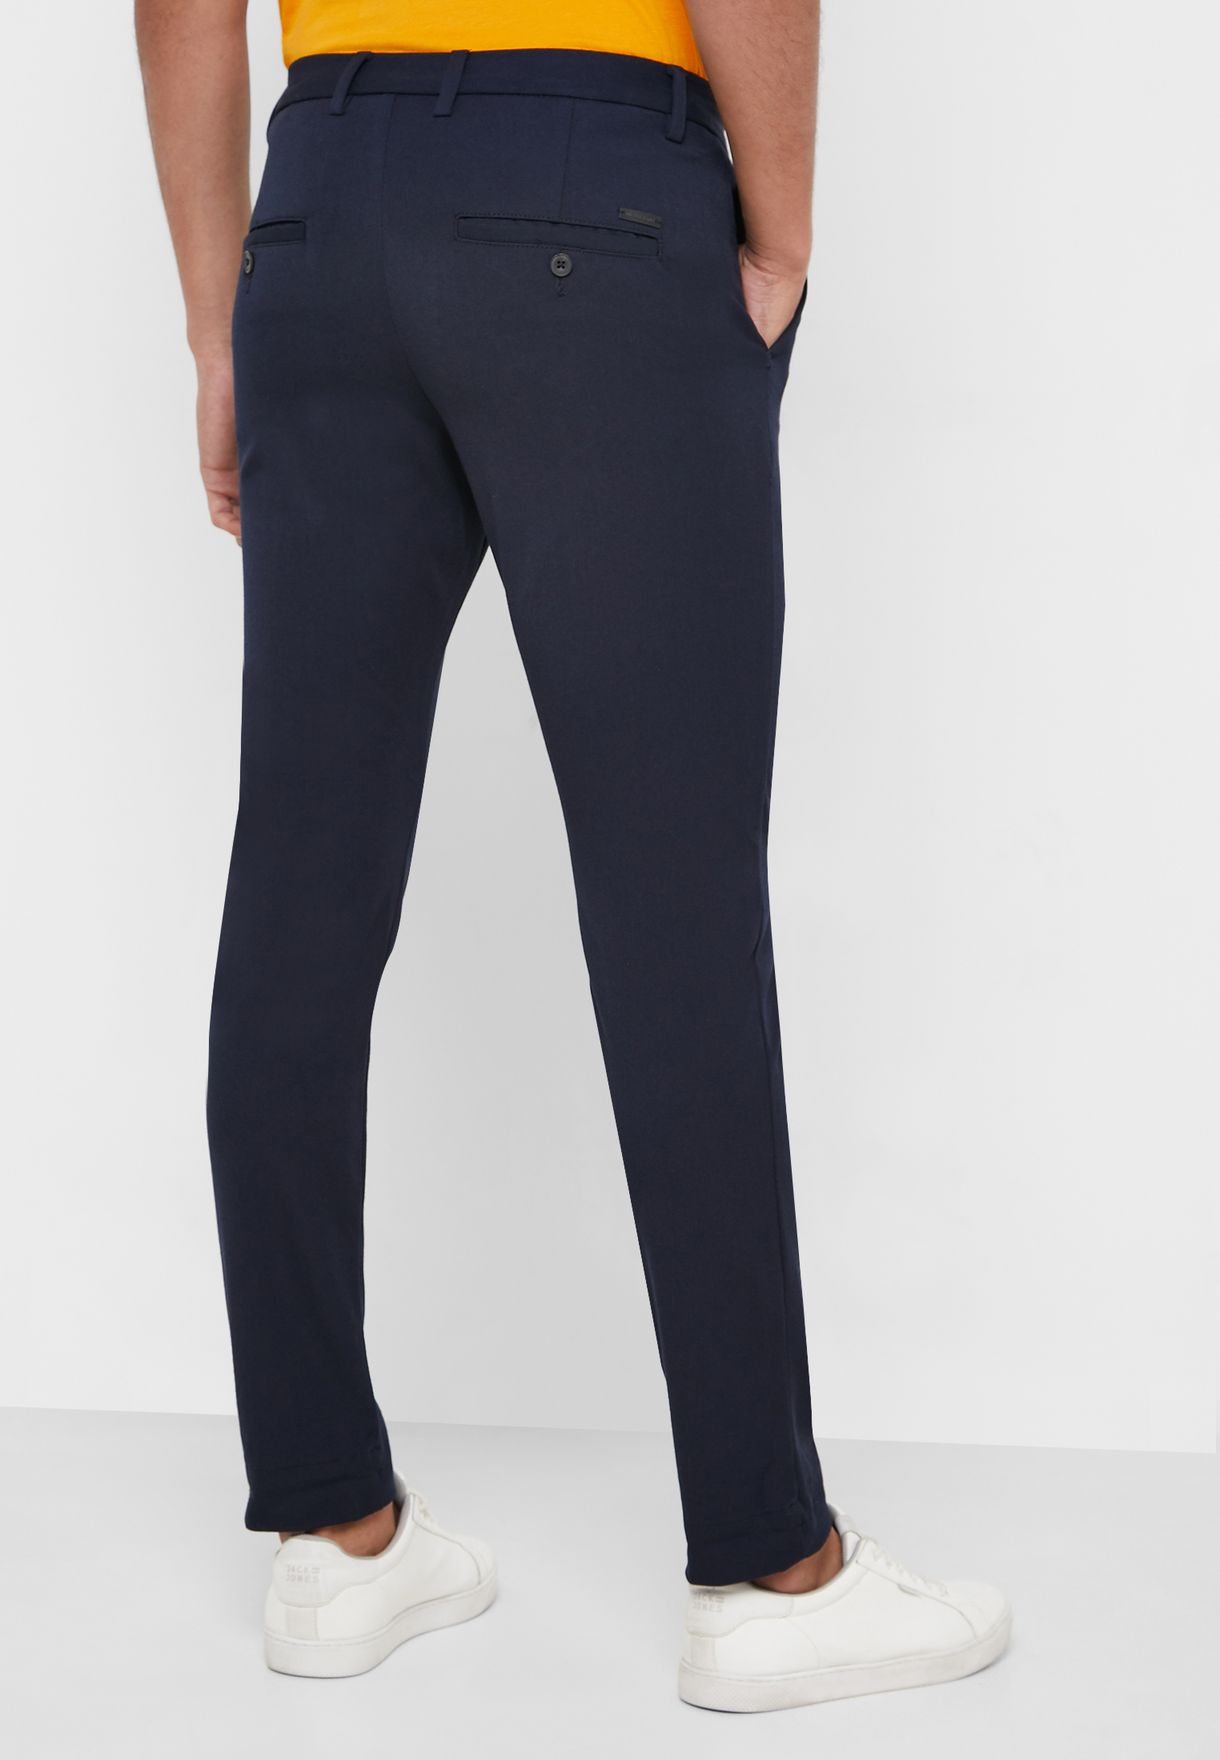 Marco Connor Slim Fit Pants